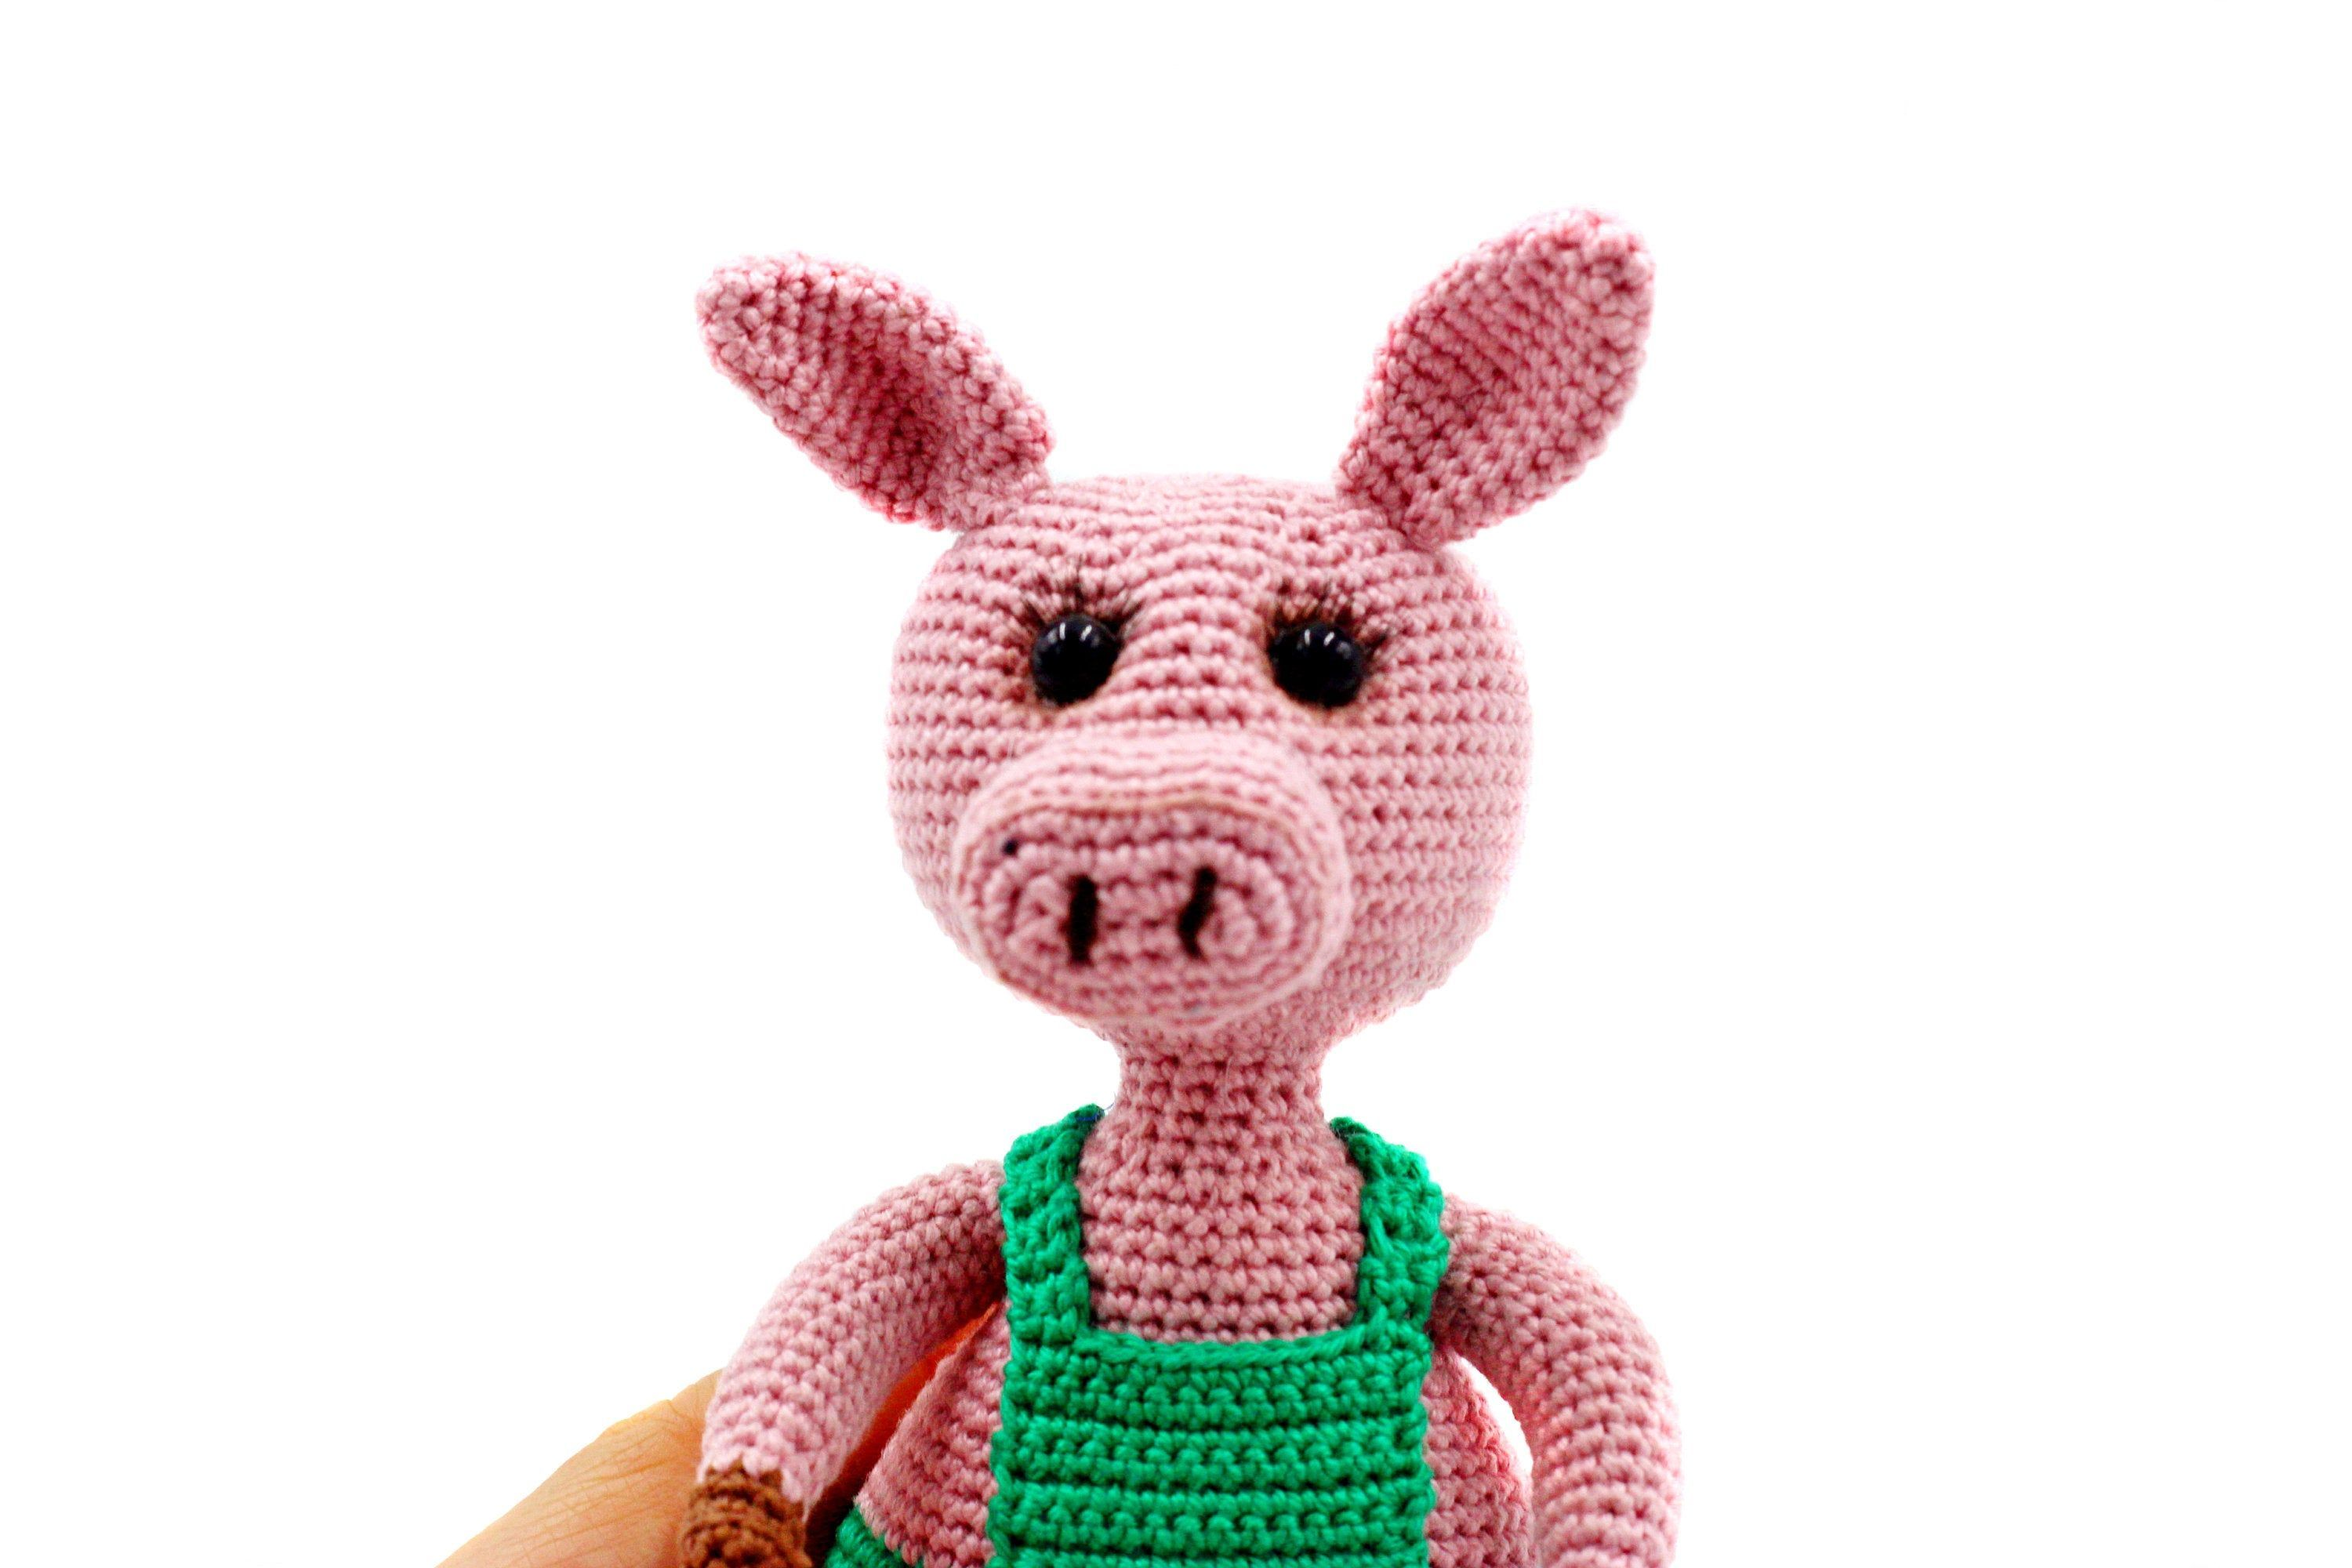 Pink pig crochet, Custom stuffed animal, Toy soft amigurumi pig, Cute funny small pig, Colle...